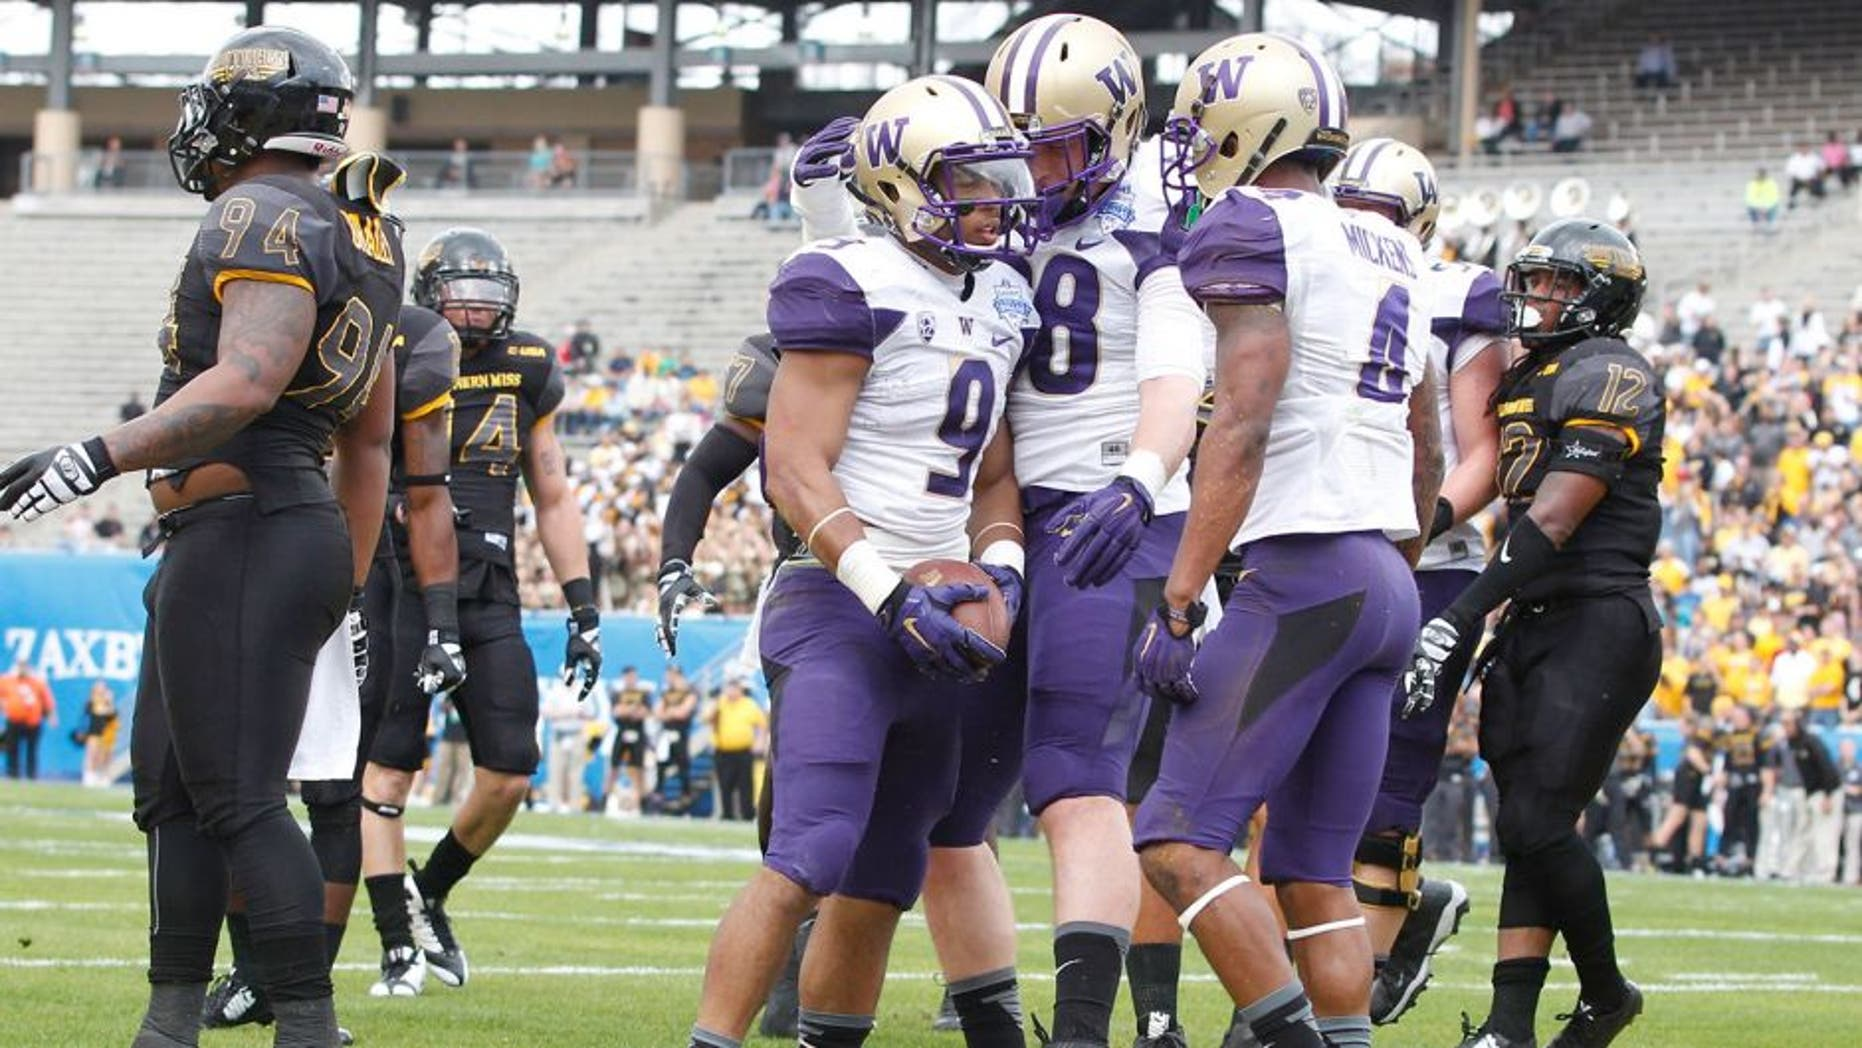 Dec 26, 2015; Dallas, TX, USA; Washington Huskies fullback Myles Gaskin (9) is congratulated after scoring a touchdown by tight end Drew Sample (88) and wide receiver Jaydon Mickens (4) in the first quarter against the Southern Miss Golden Eagles at Cotton Bowl Stadium. Mandatory Credit: Tim Heitman-USA TODAY Sports